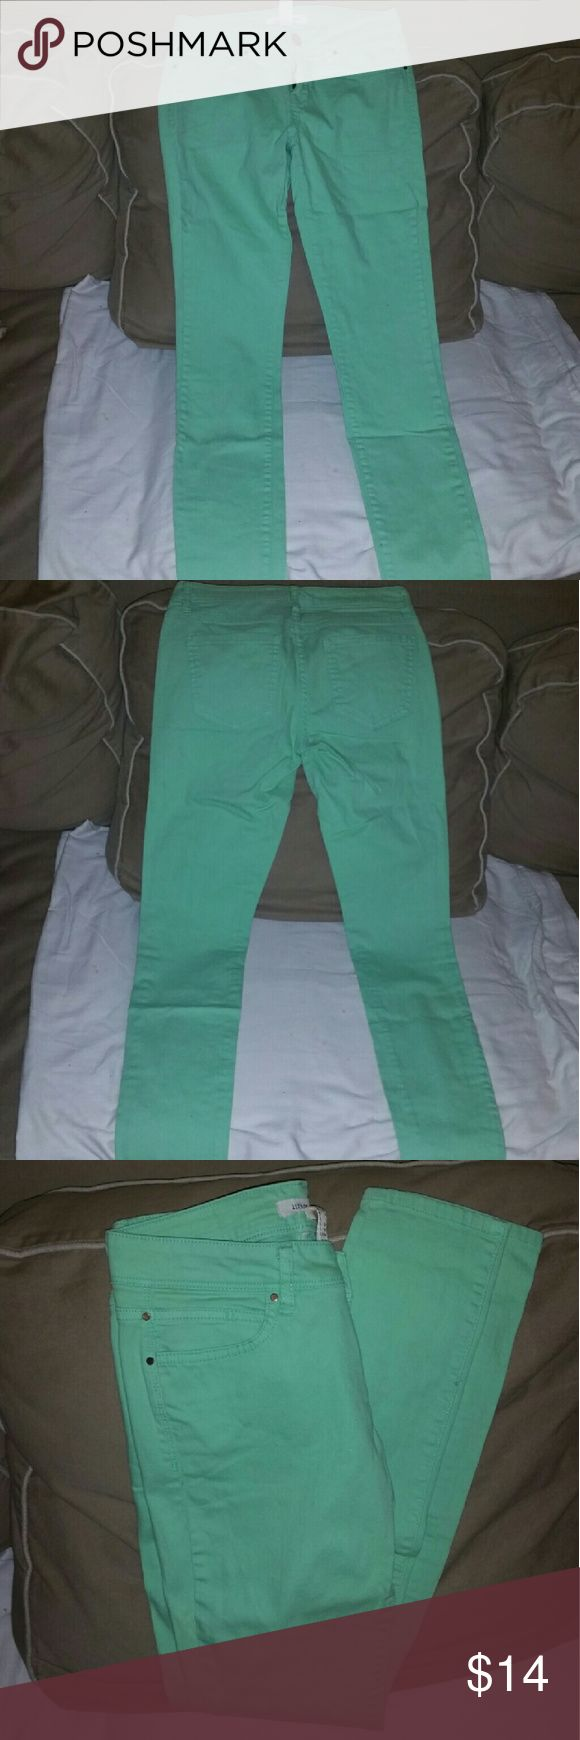 Ladies pants Good condition/ minor spot in the front right leg/ color mint green forever 21 (life in progress) Pants Skinny